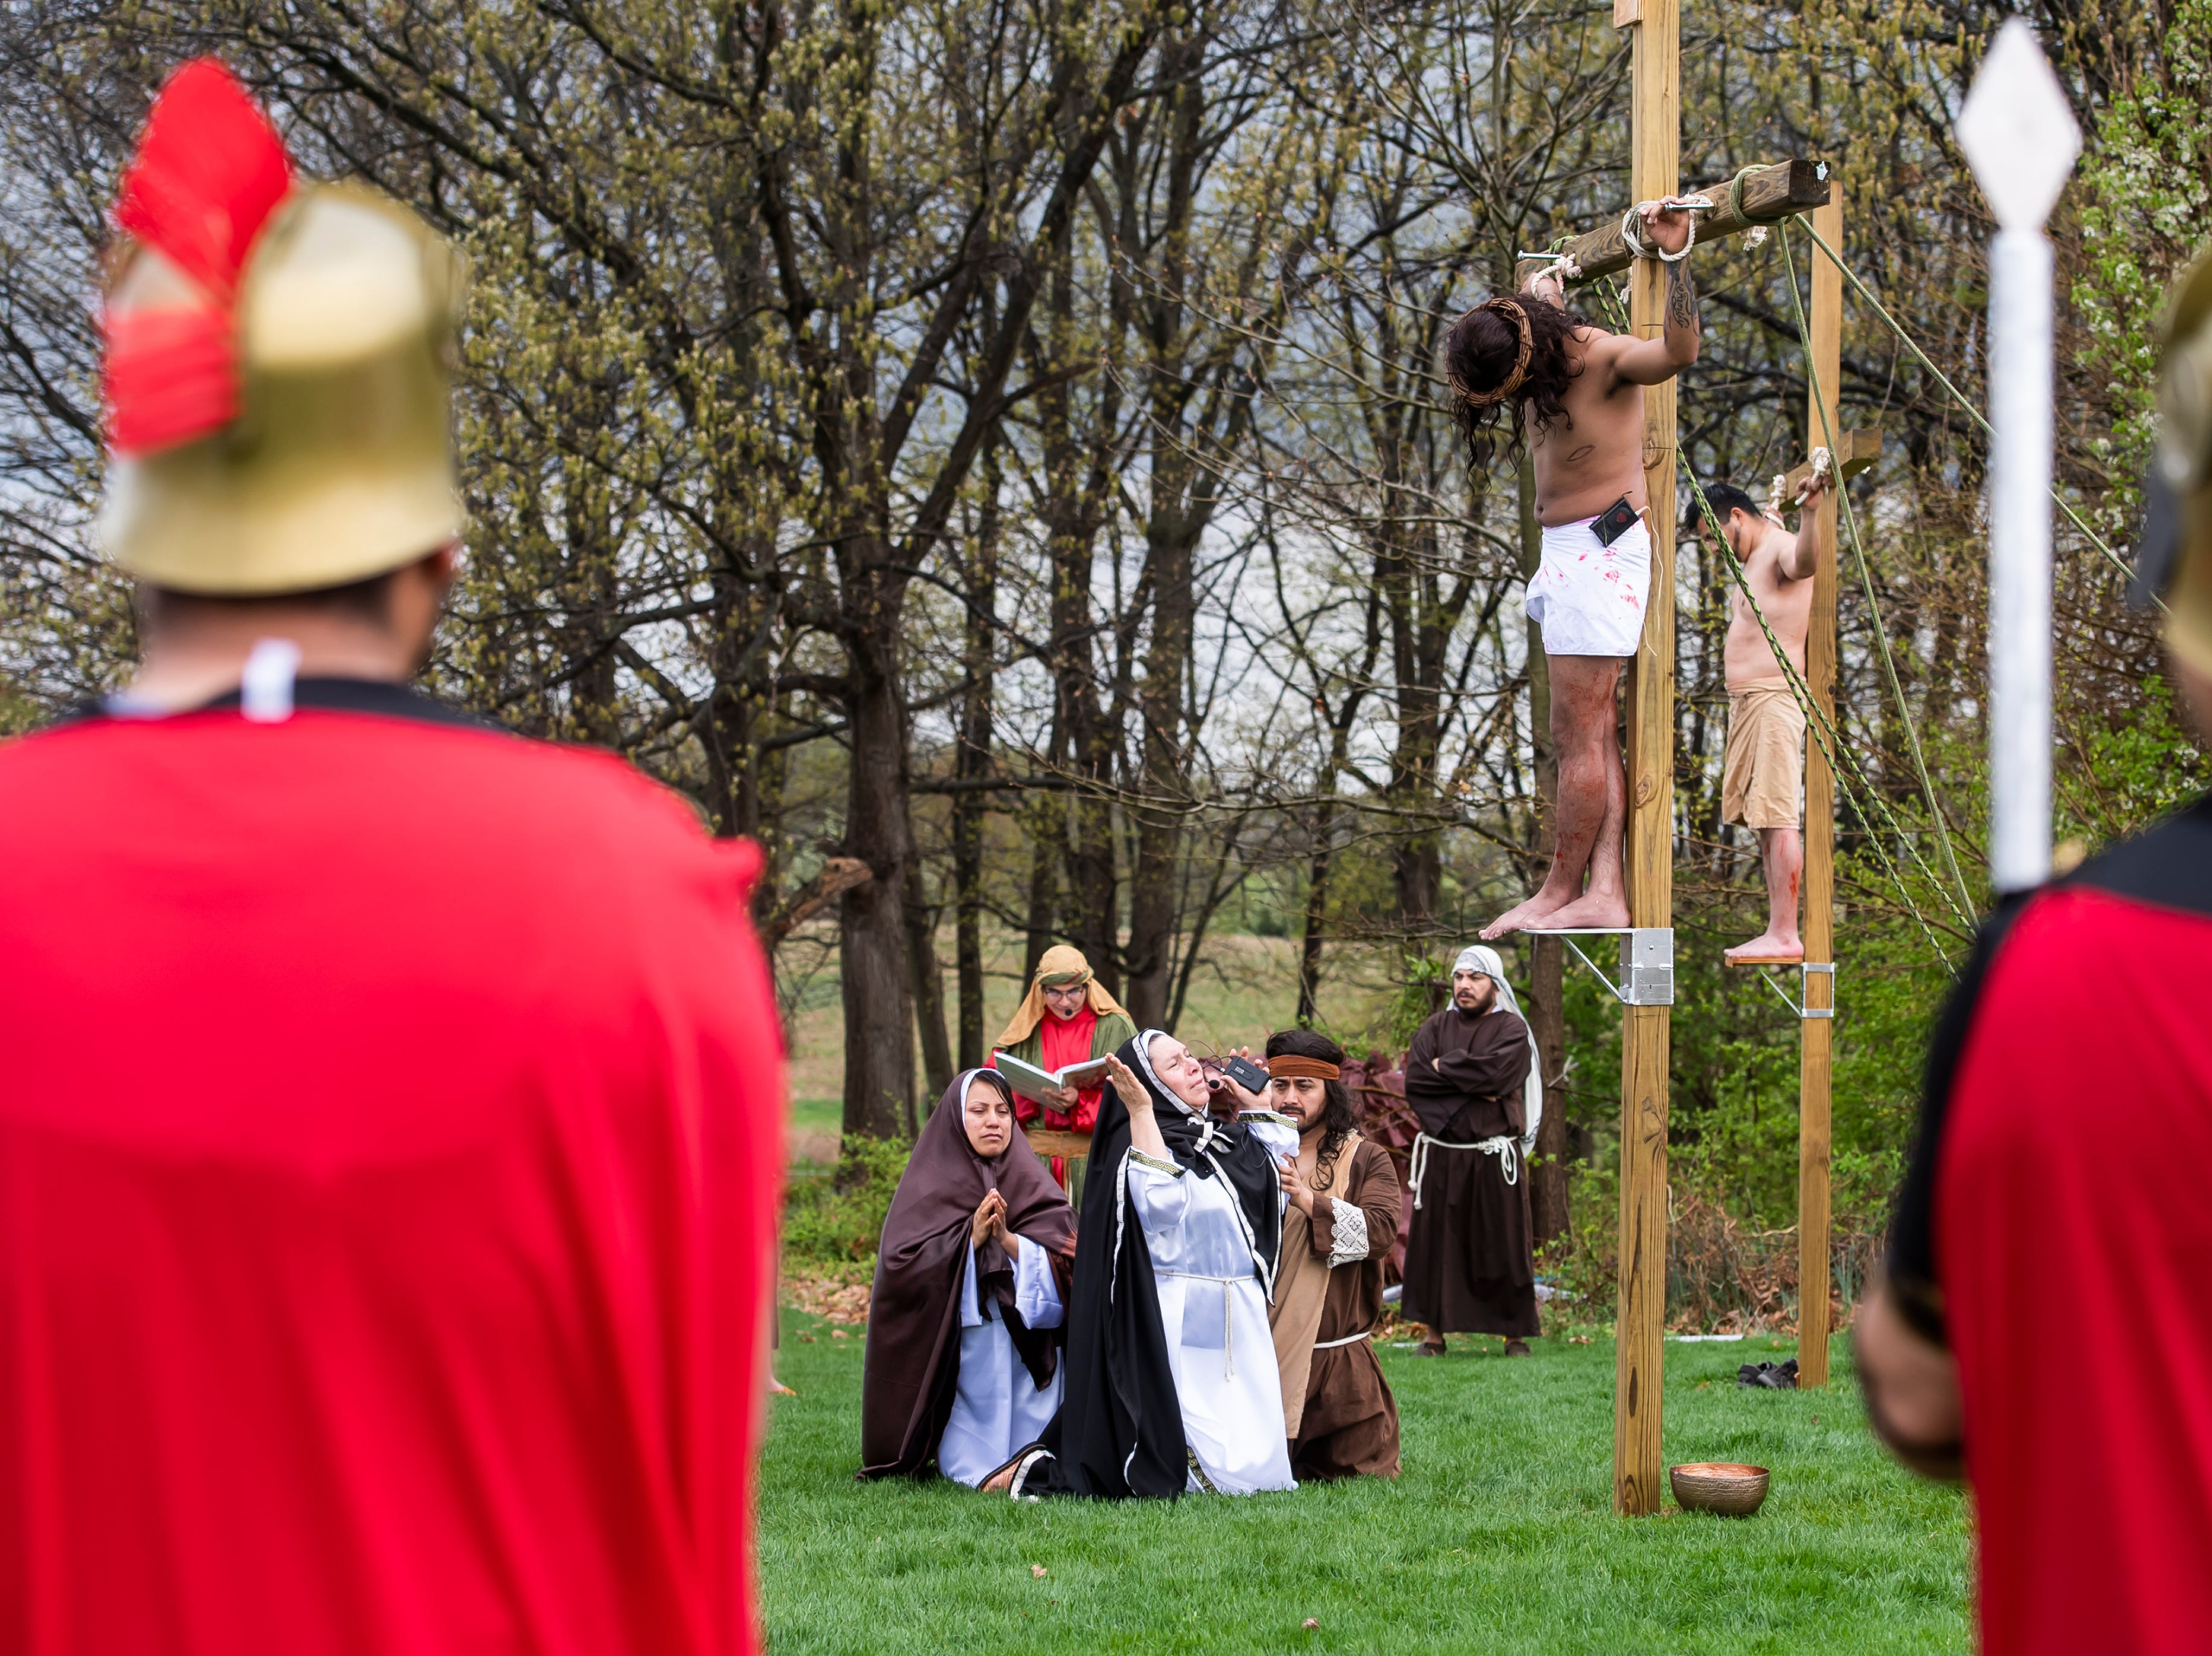 Parishioners at St. Joseph Catholic Church in Hanover take part in a Stations of the Cross procession on Good Friday, April 19, 2019.